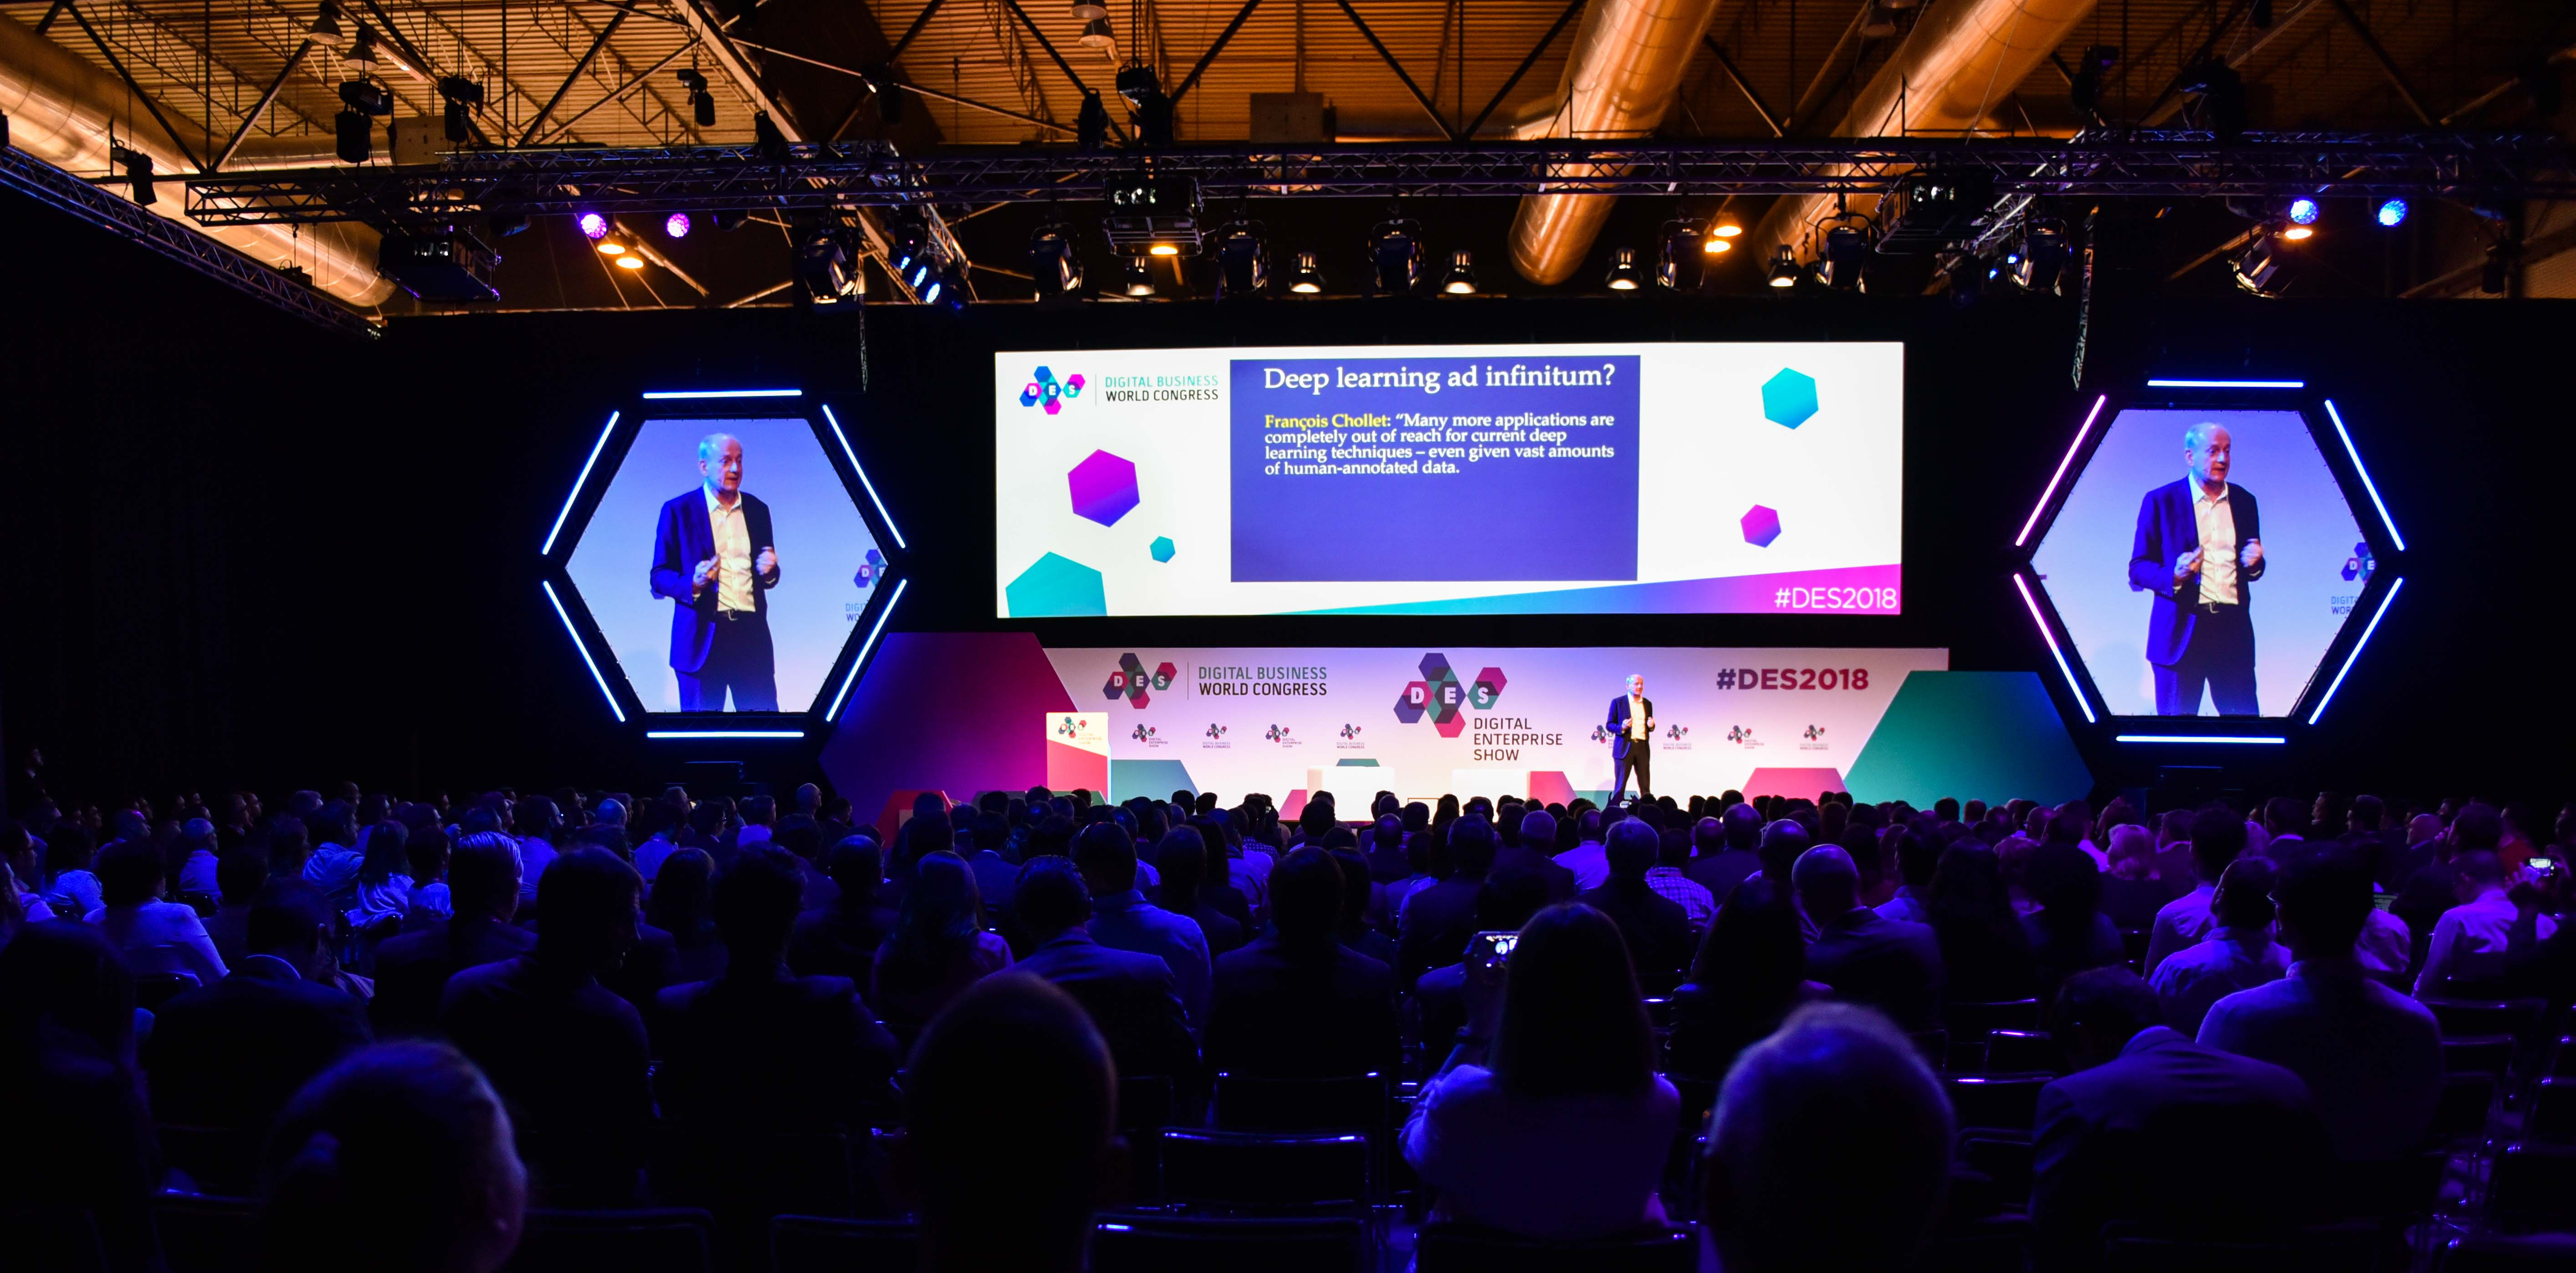 DES2019 will analyze how technologies are transforming the doctor-patient relationship in the Digital Health Forum